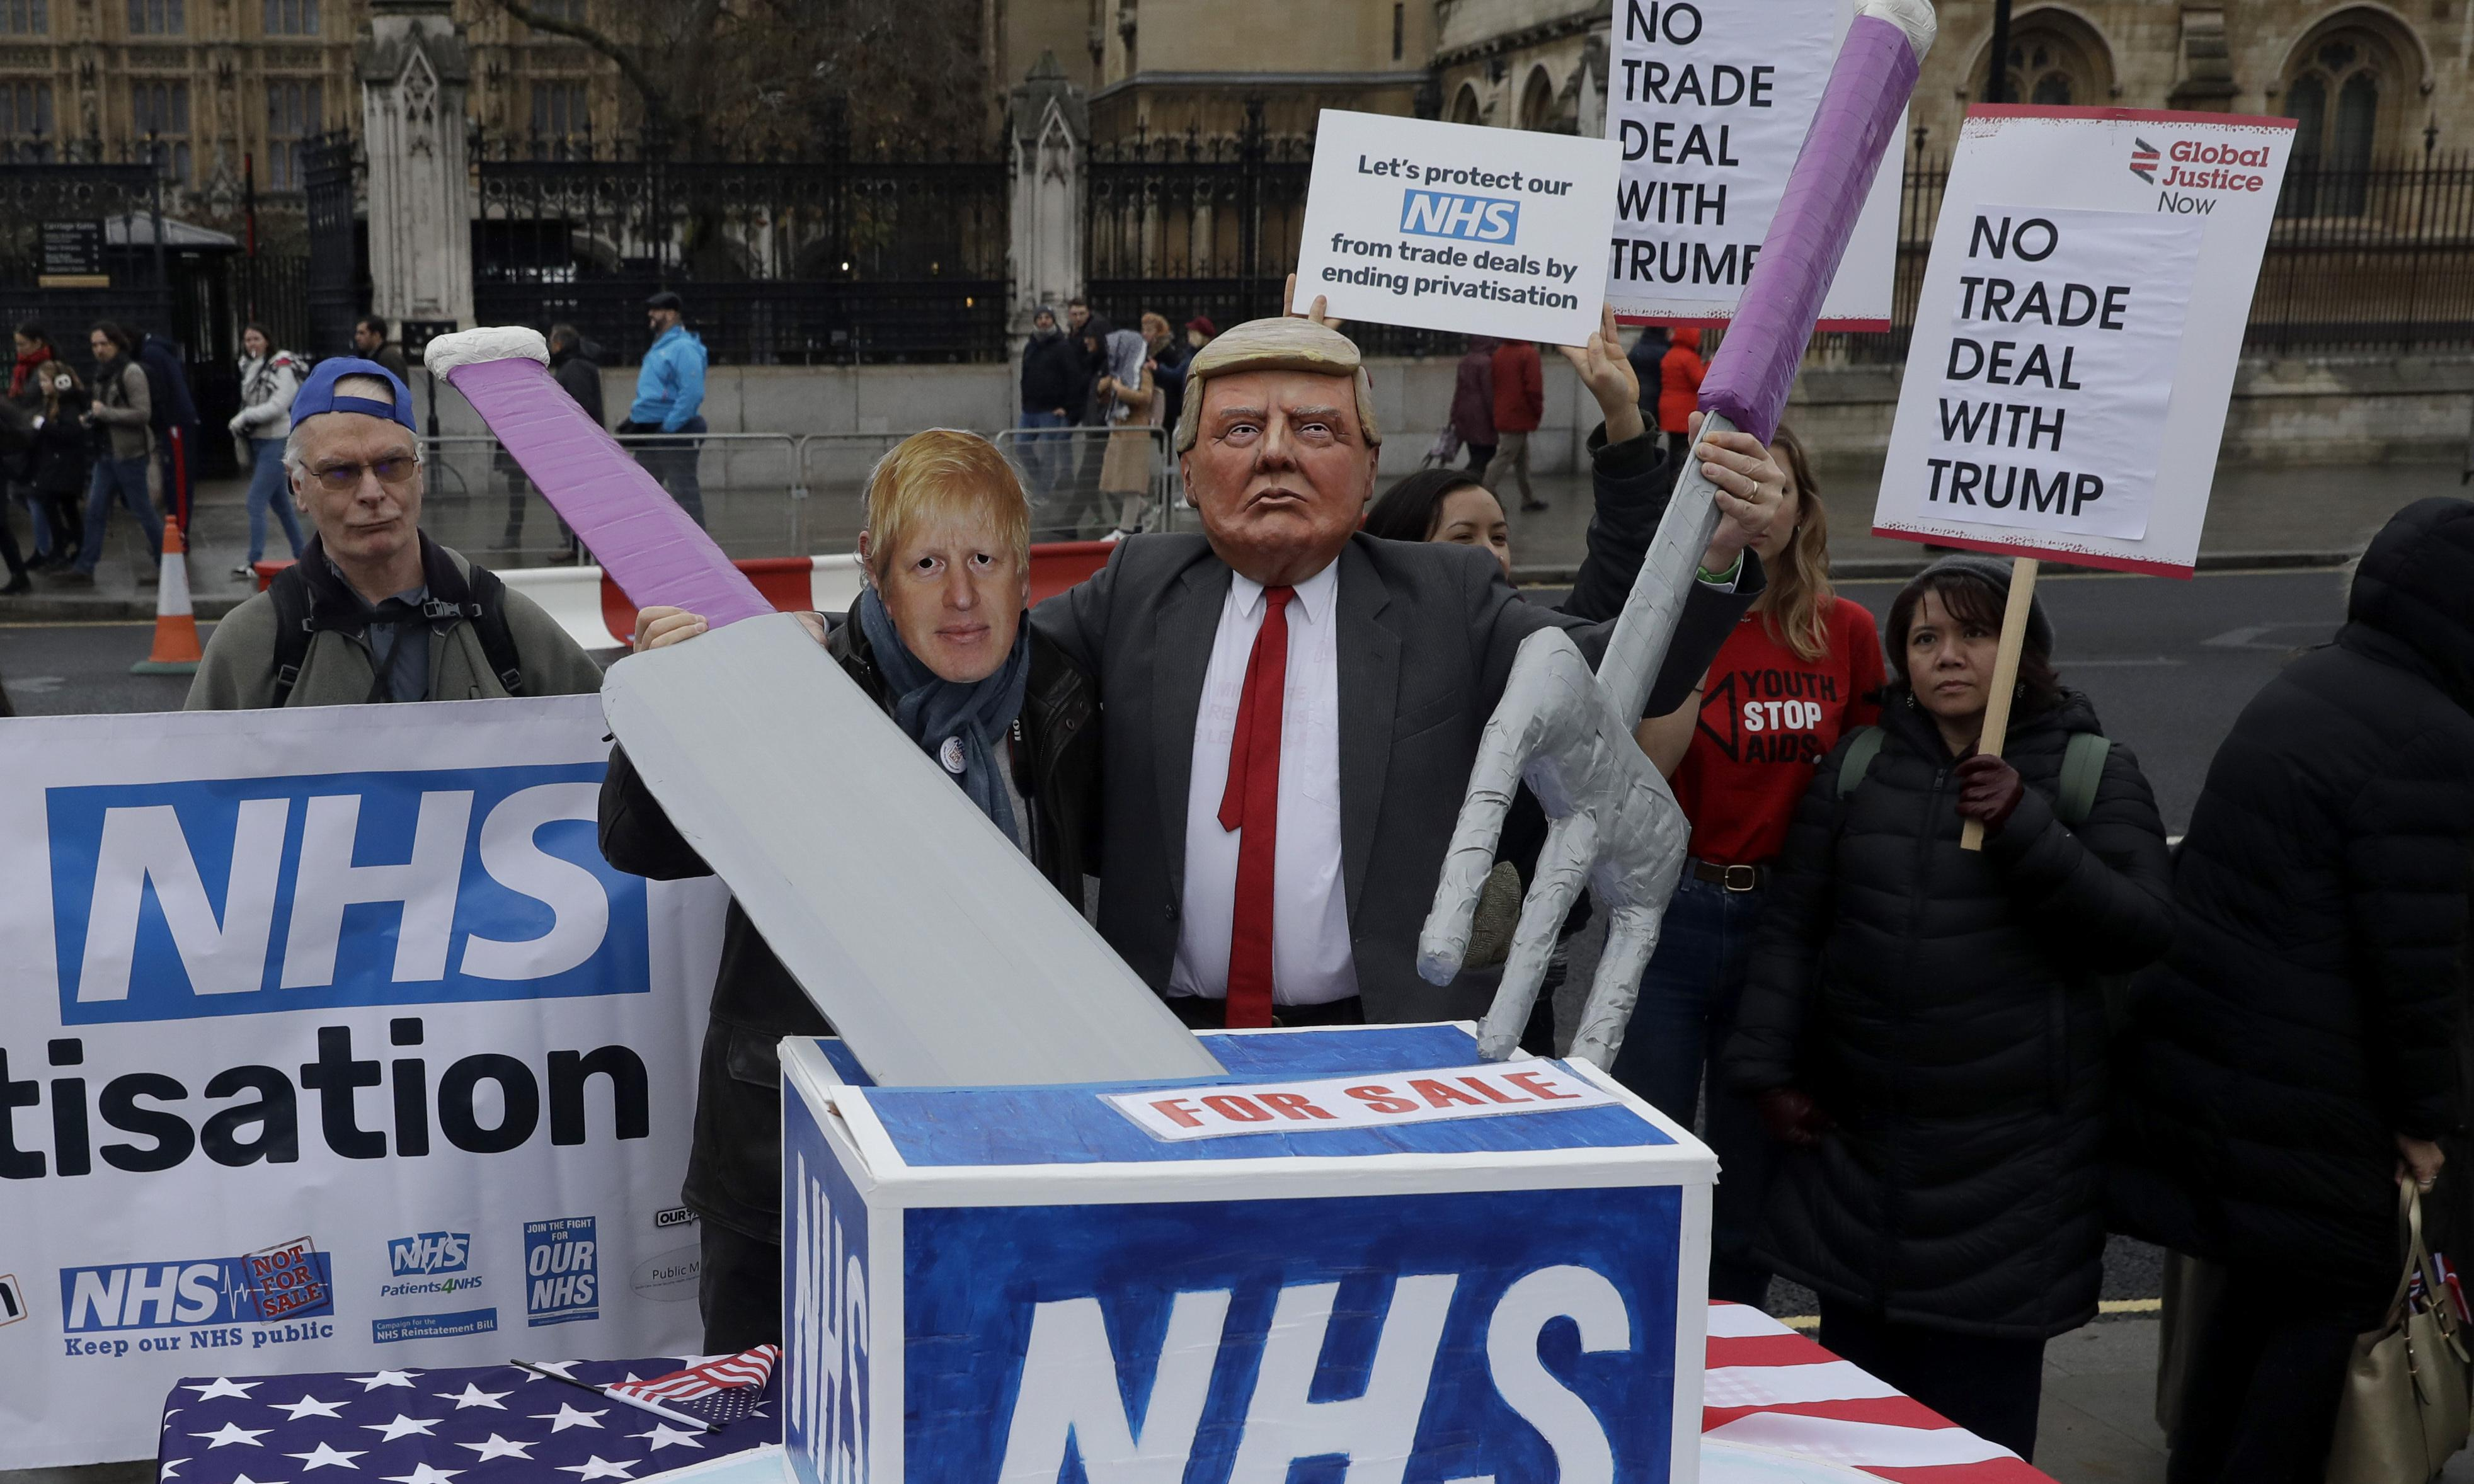 The Guardian view on Boris Johnson and the NHS: a problem of trust